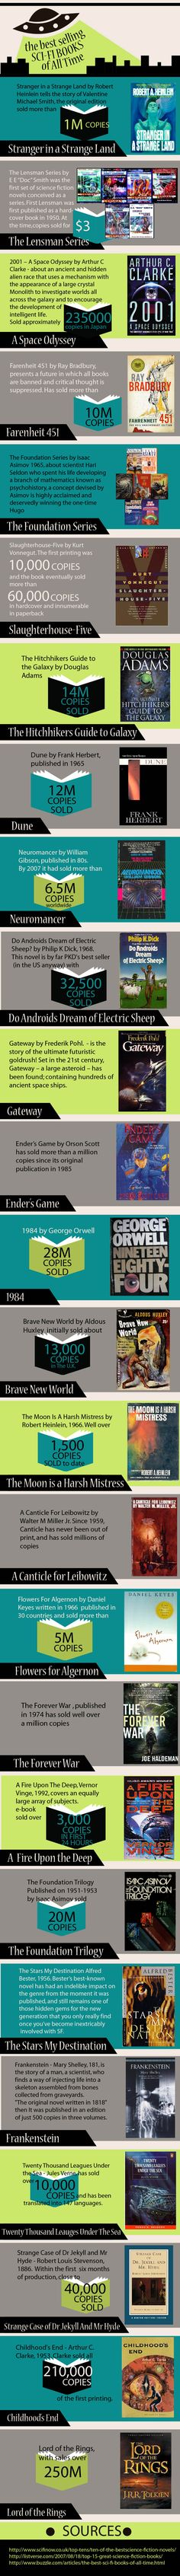 The best selling sci-fi books of all time [infographic] | Ebook Friendly